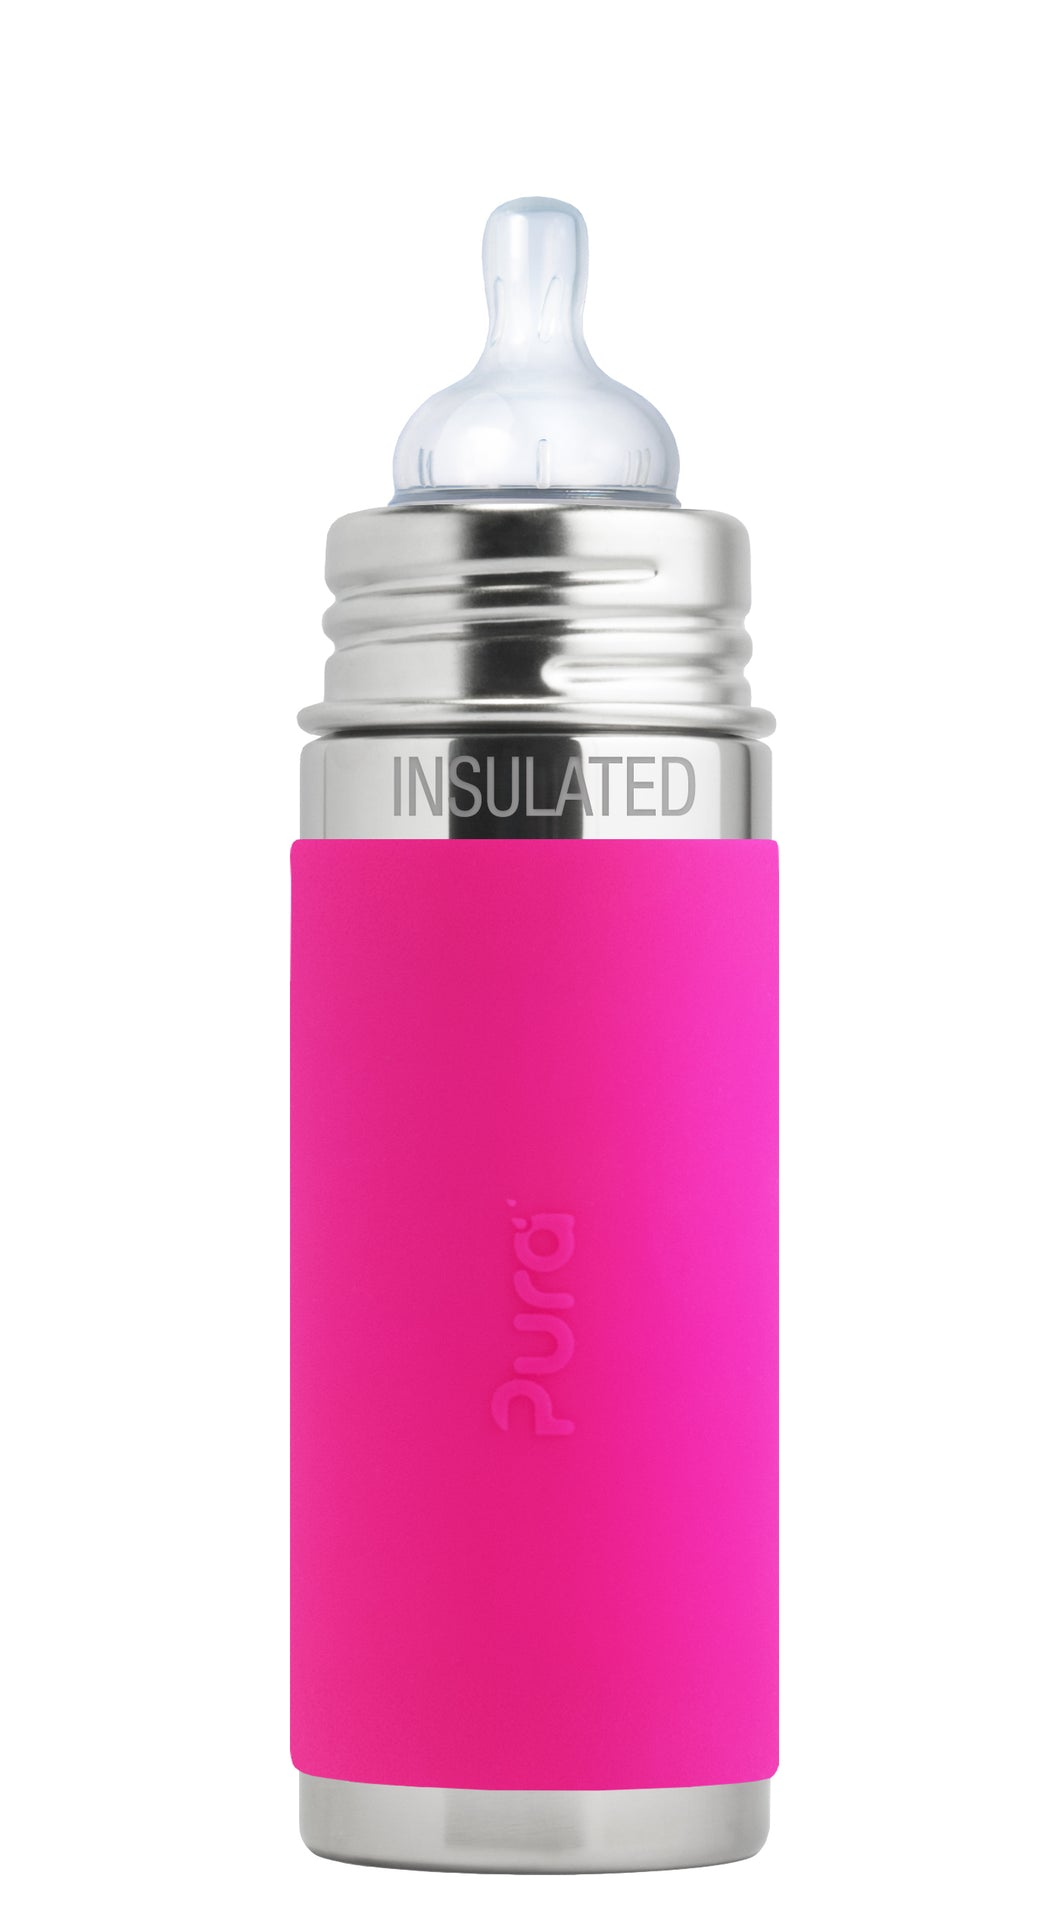 Pura Kiki 260ml Insulated Infant Stainless Steel Bottle - Pink Sleeve